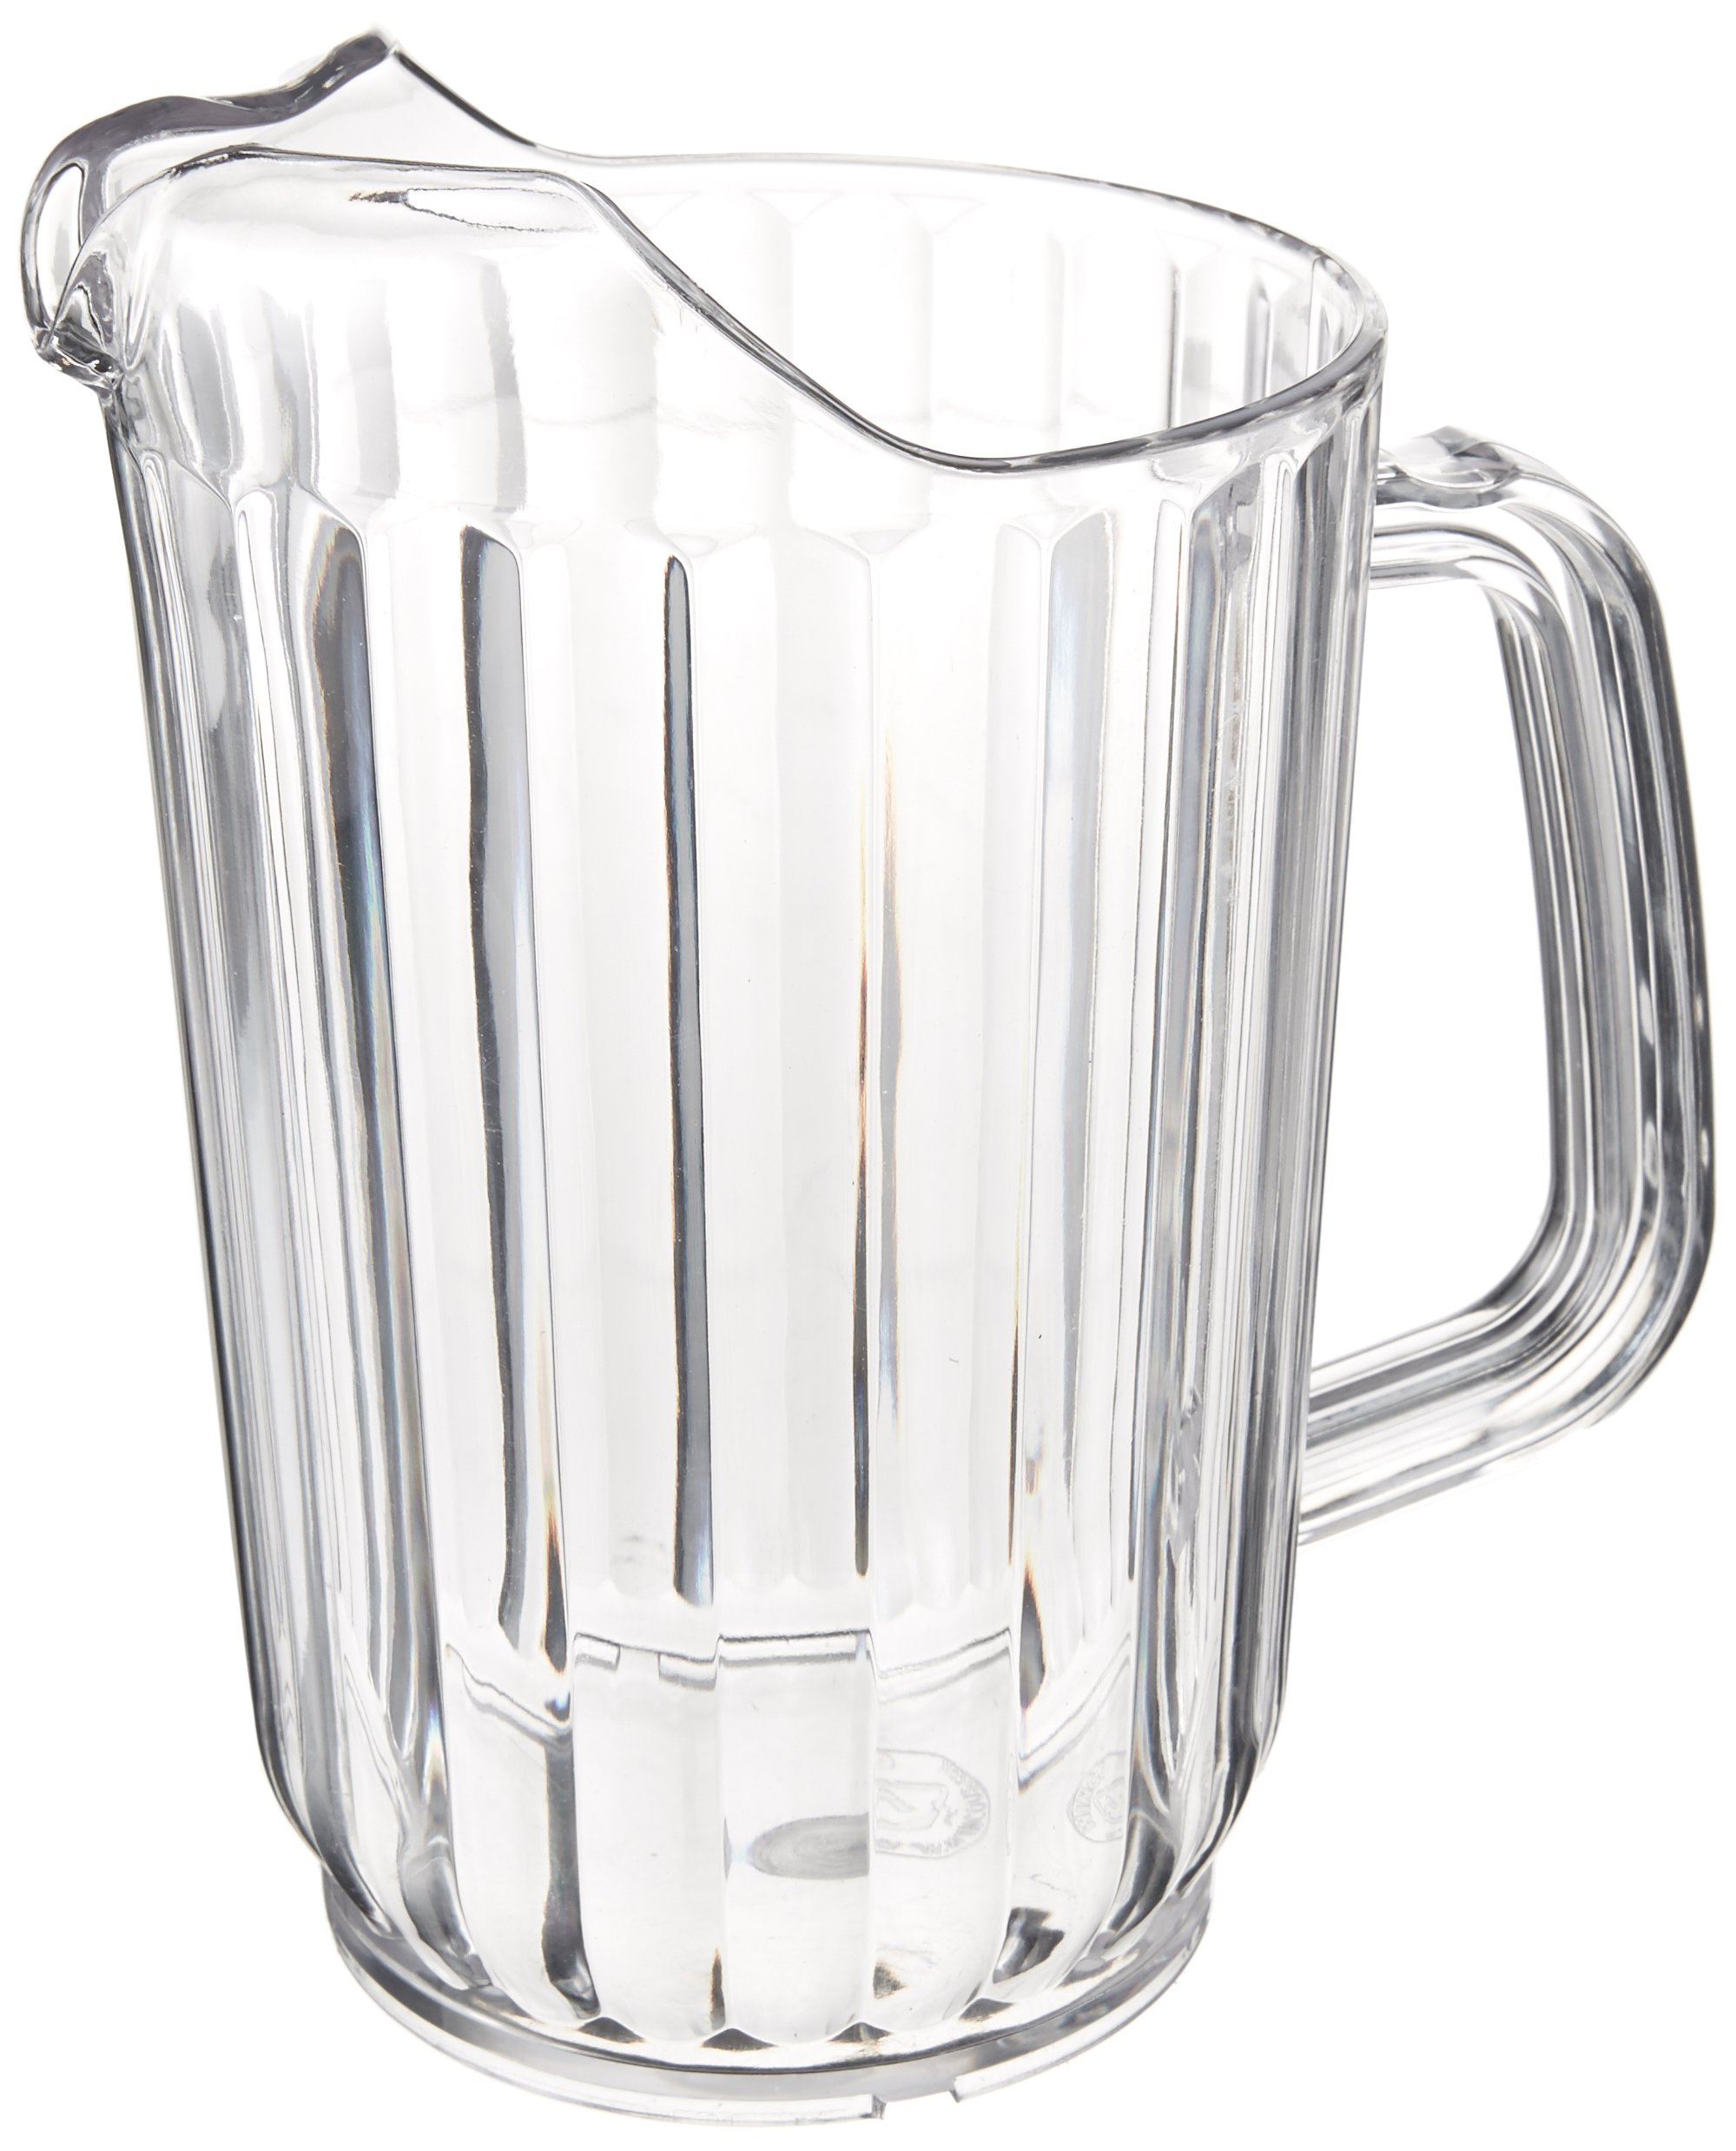 Winco Polycarbonate Clear Water Pitcher, 32 Ounce - 1 each.